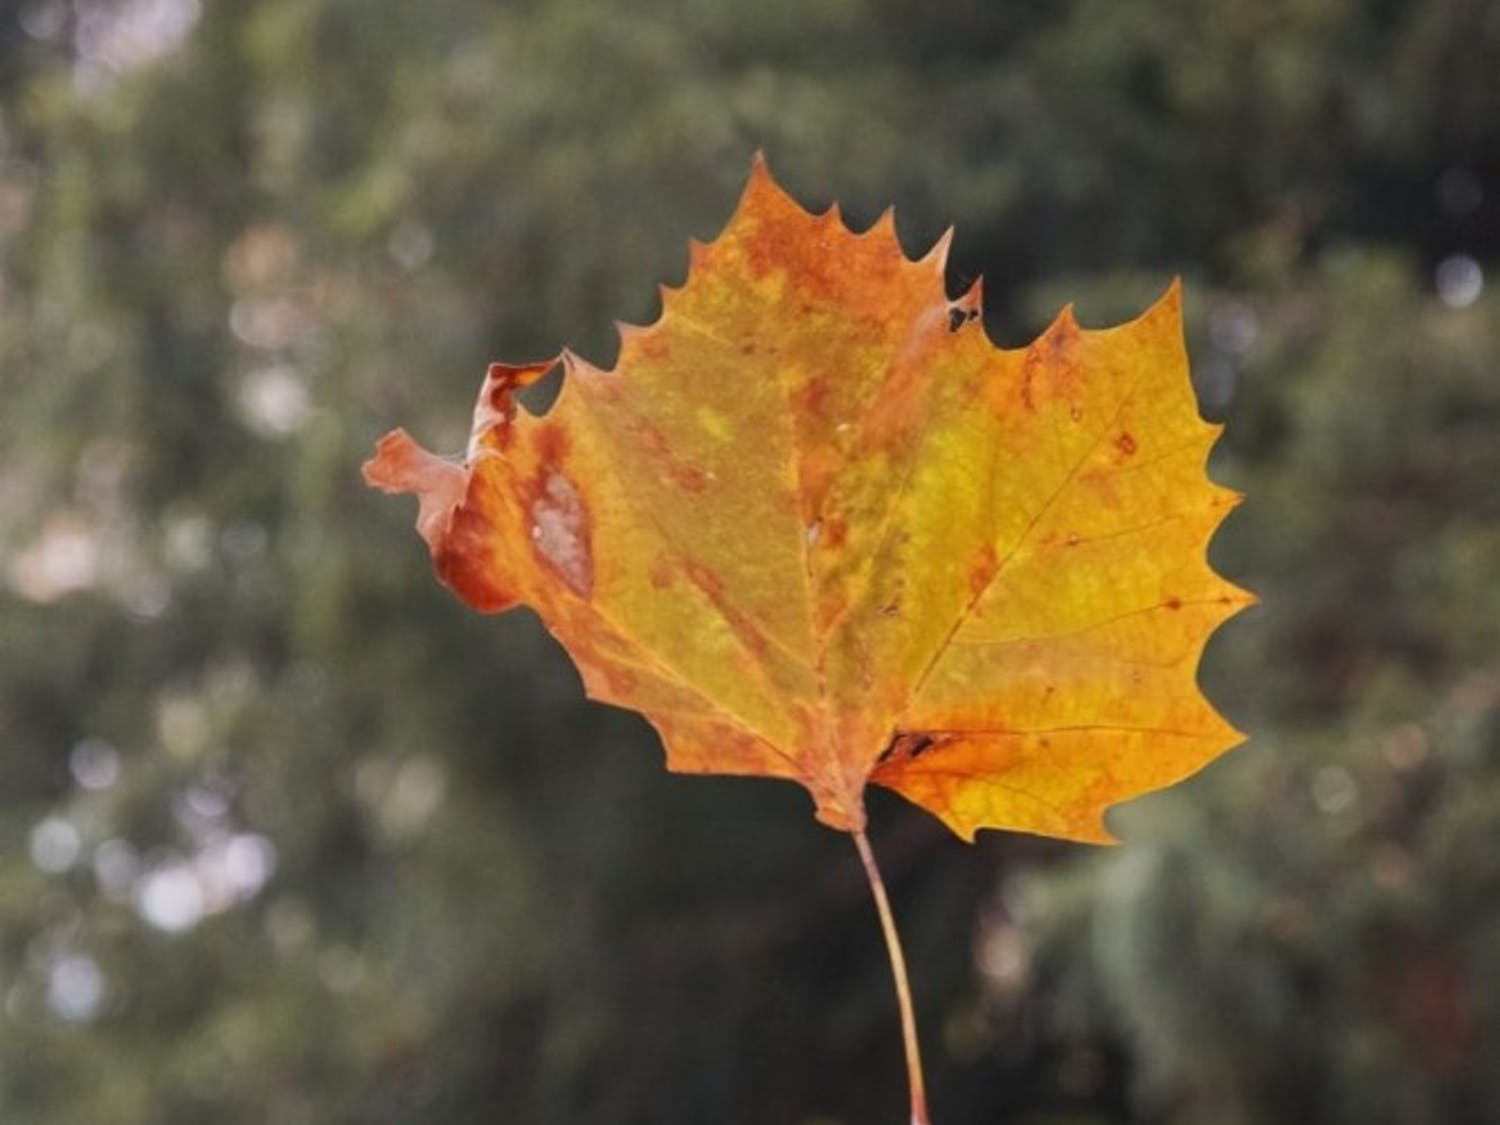 leaf-autumn-dried-leaves-leaves-wallpaper-preview.jpg